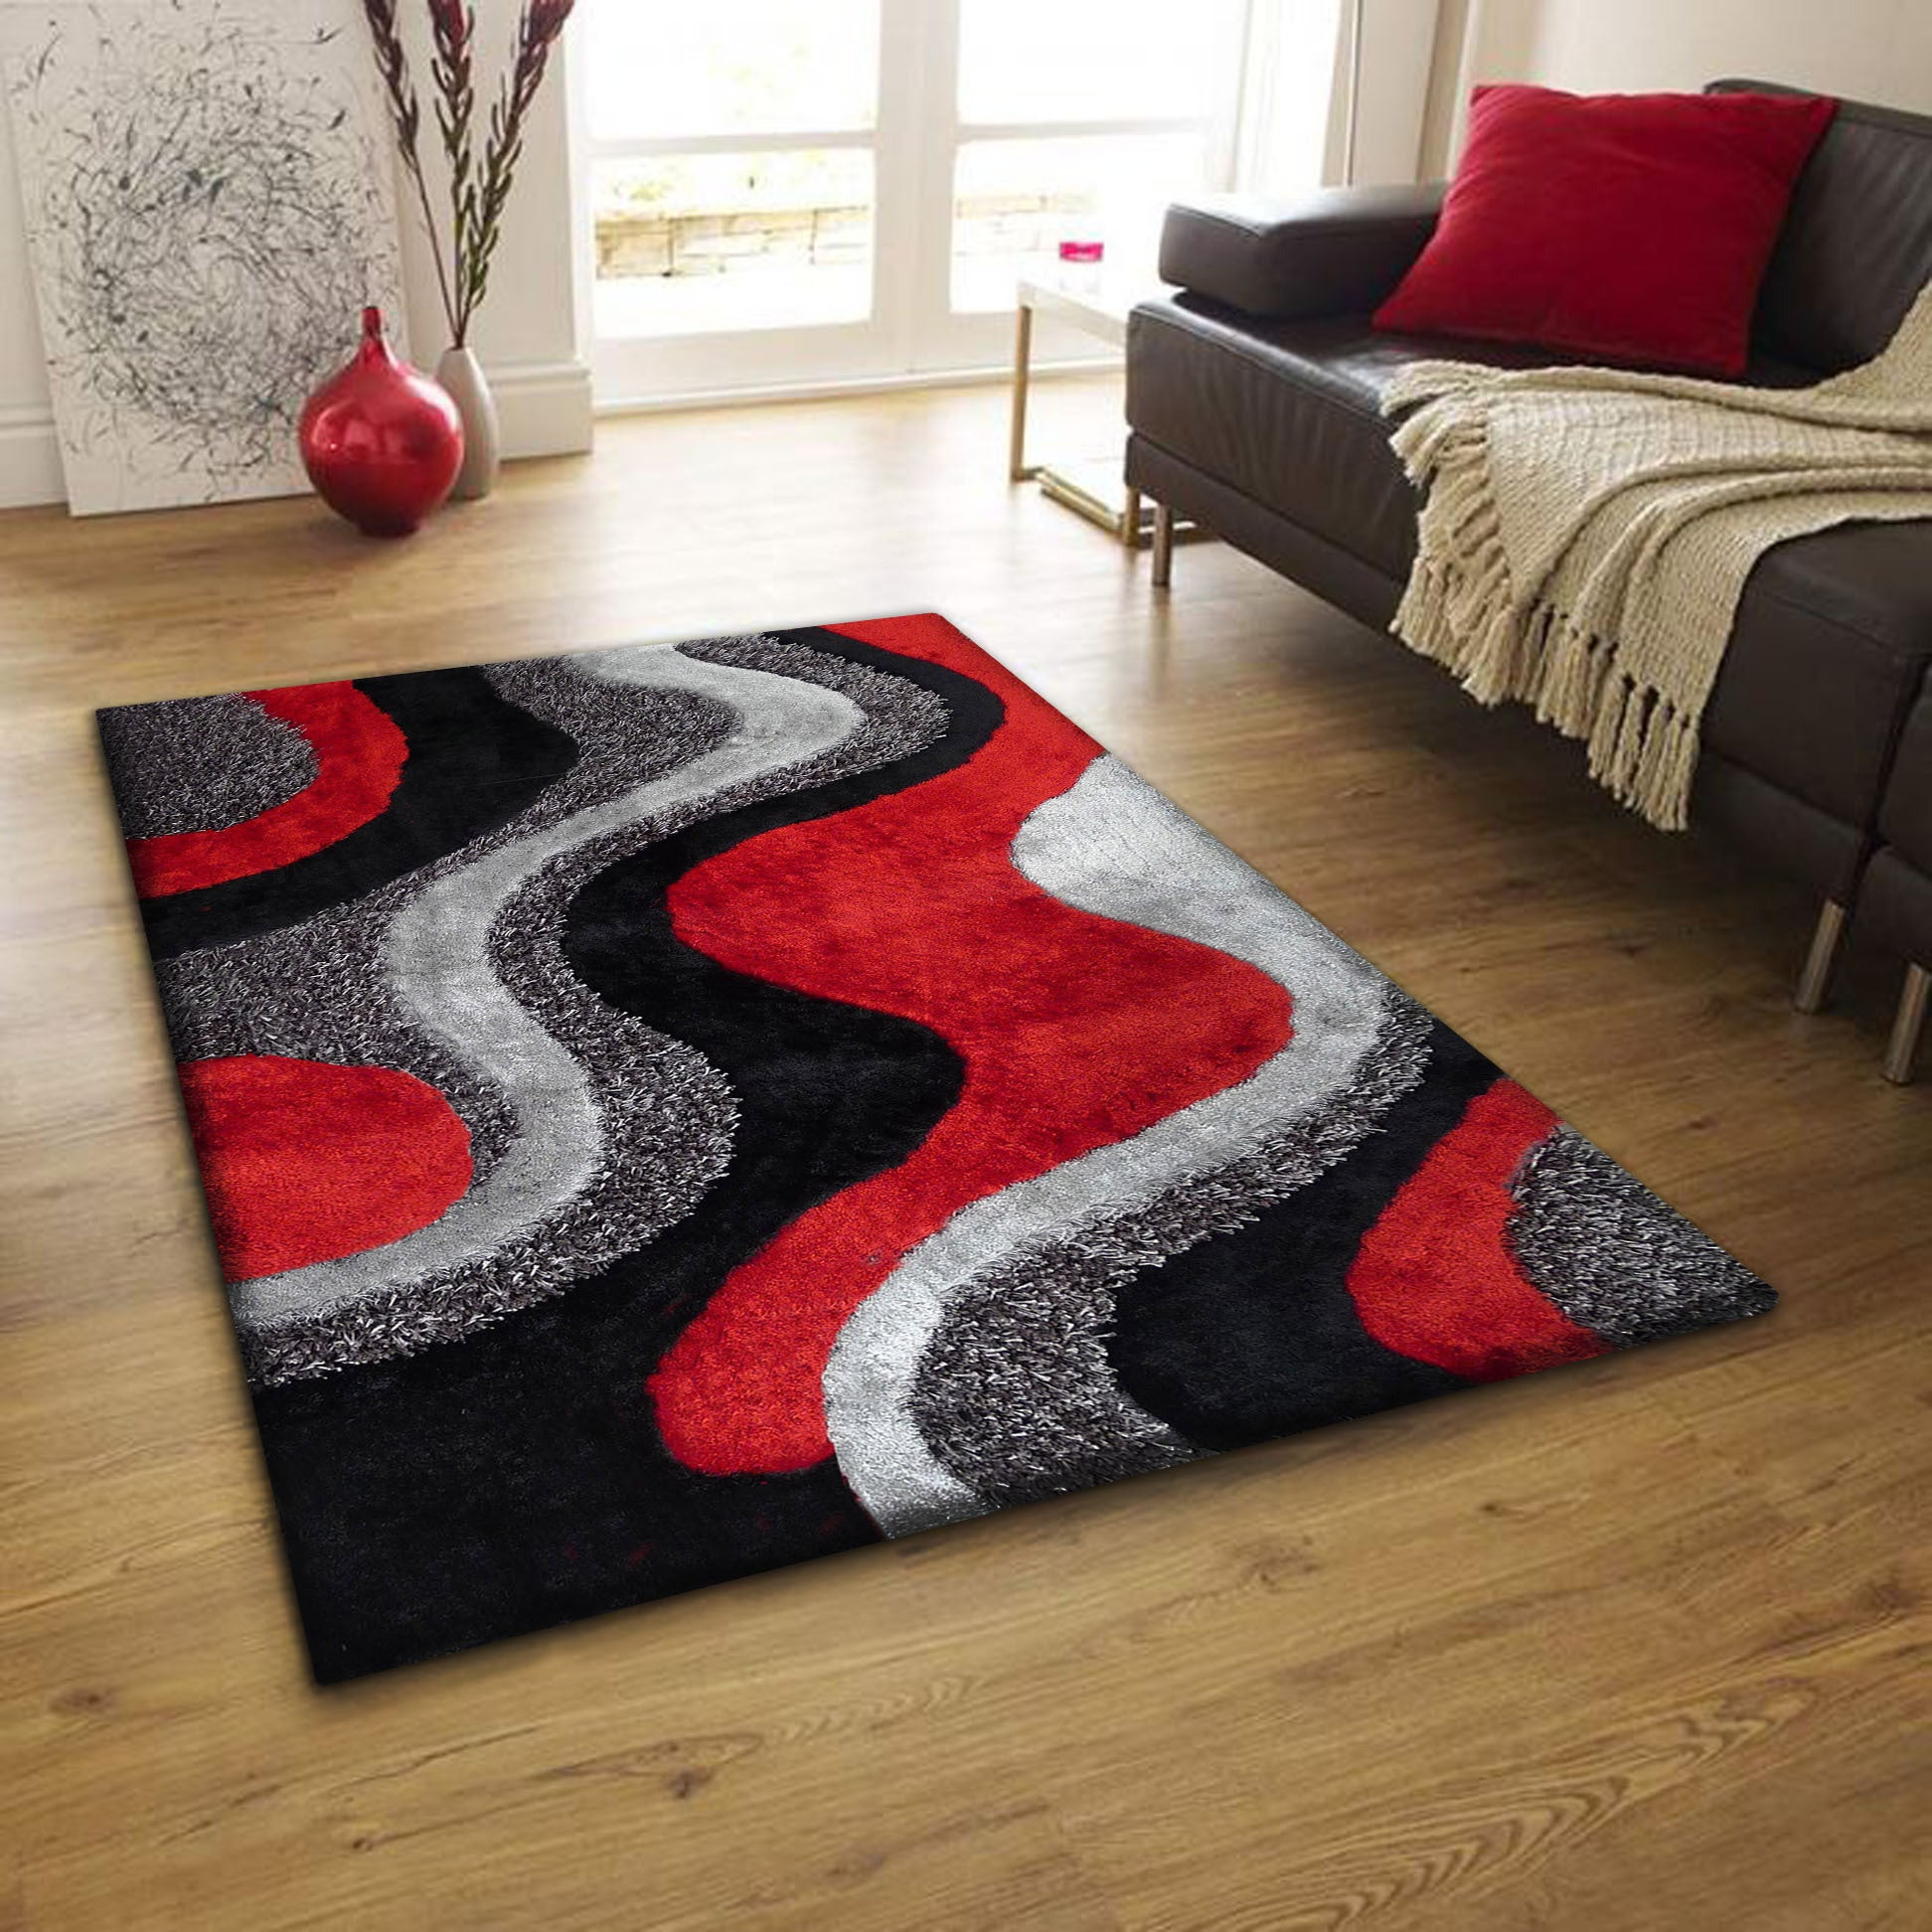 Shaggy Viscose Vibrant Waves Hand Tufted Shag Area Rug Red Gray White Black 8 X 11 On Free Shipping Today Com 12727778